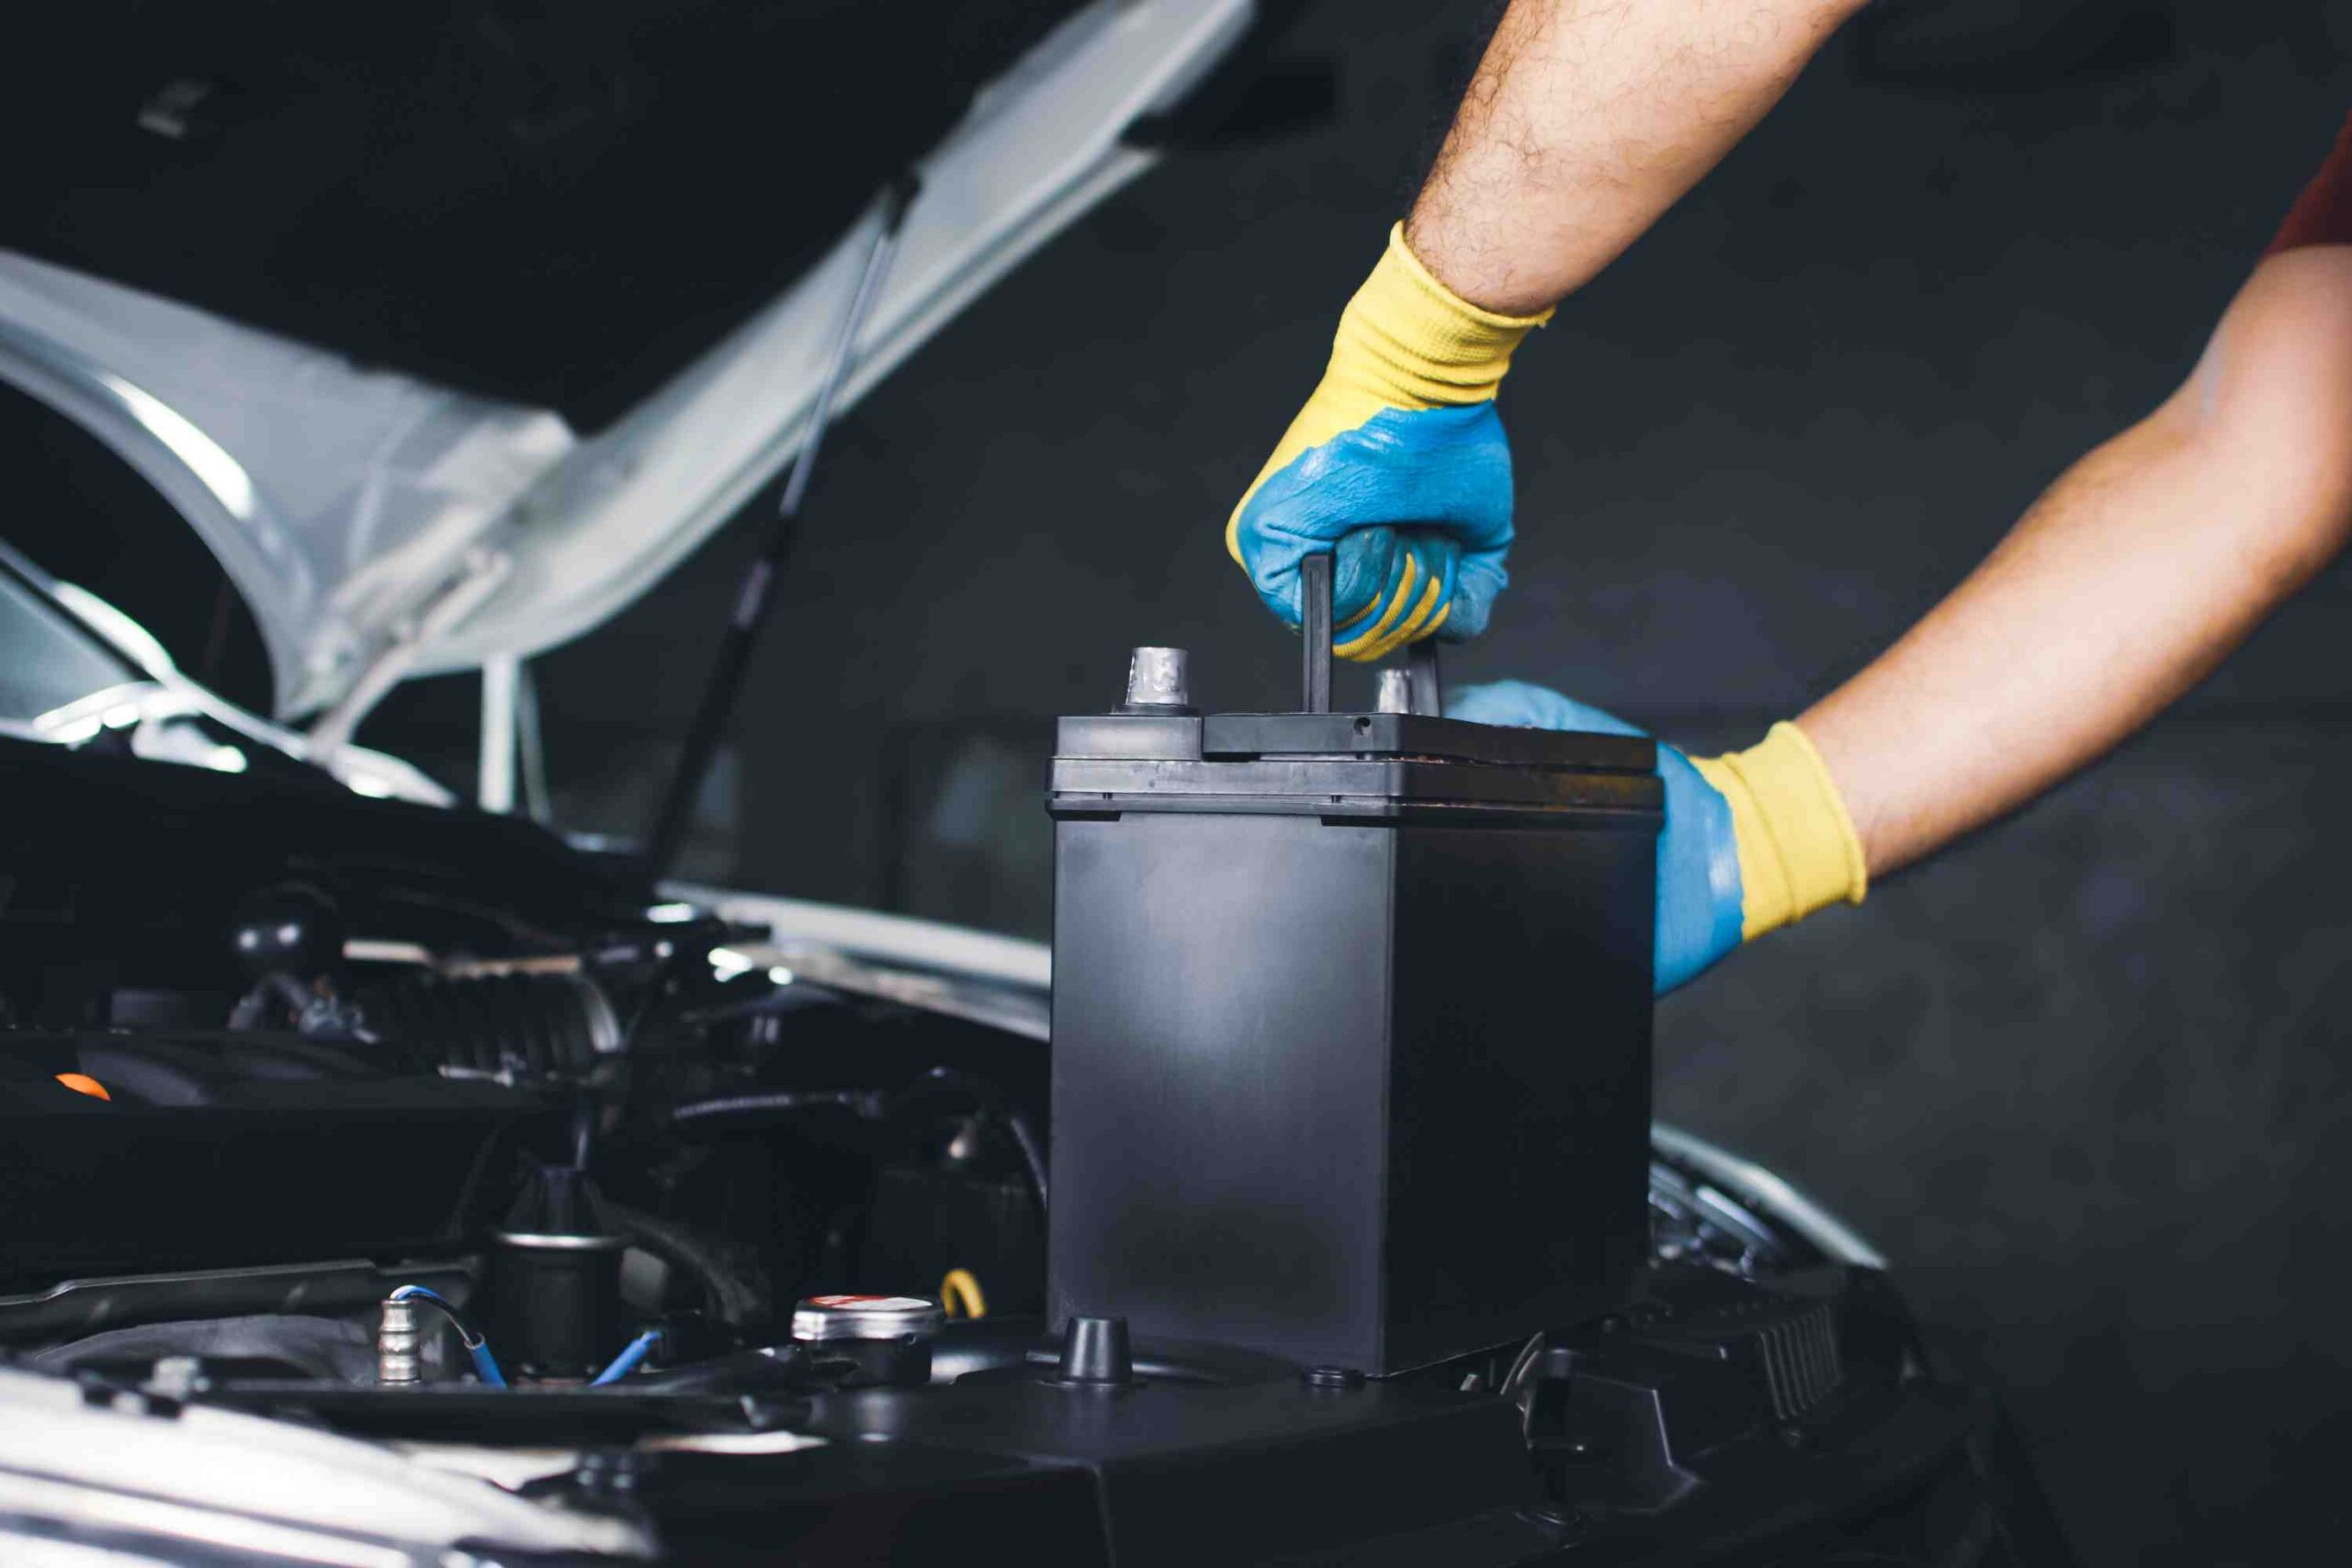 Clean car battery with packaging removed